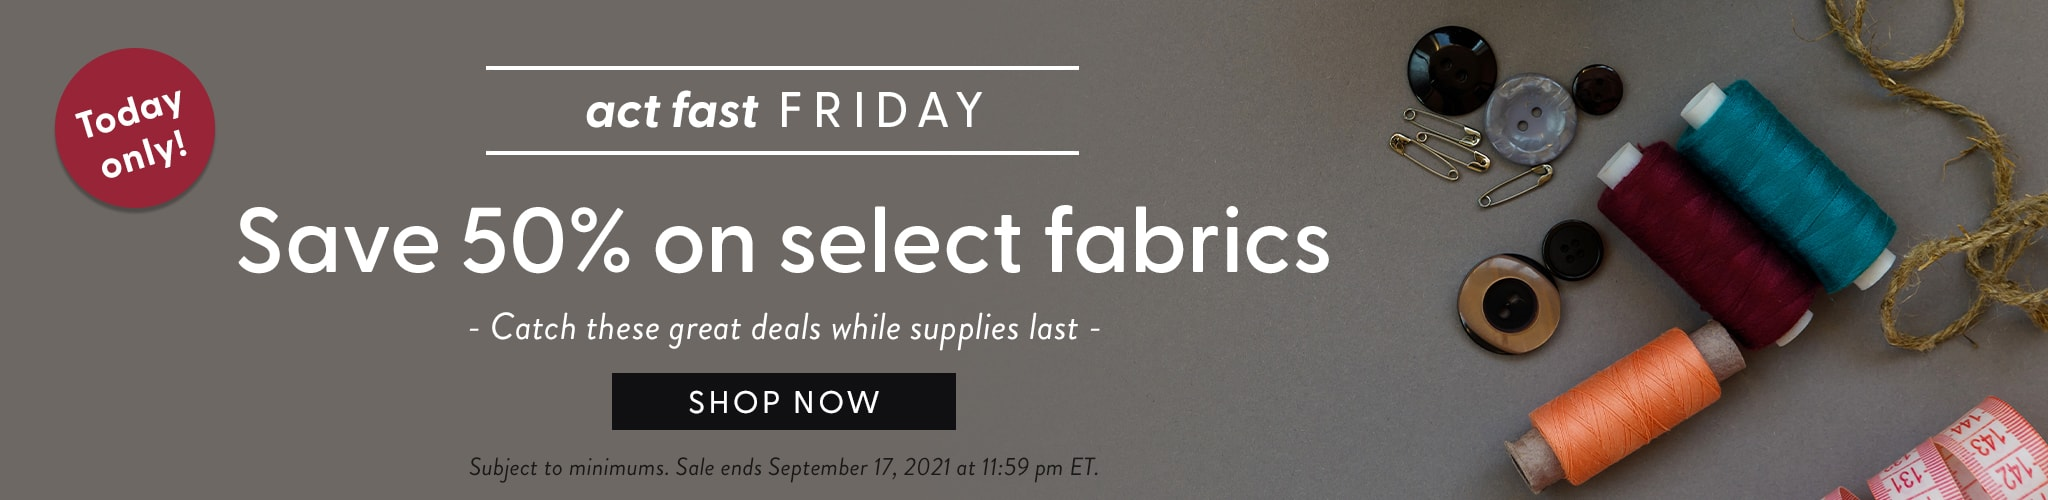 Today only. Act fast Friday. Save 50 percent on select fabrics. Catch these great deals while supplies last. Shop now. Subject to minimums. Ends September 17, 2021 at 11:59 pm ET.